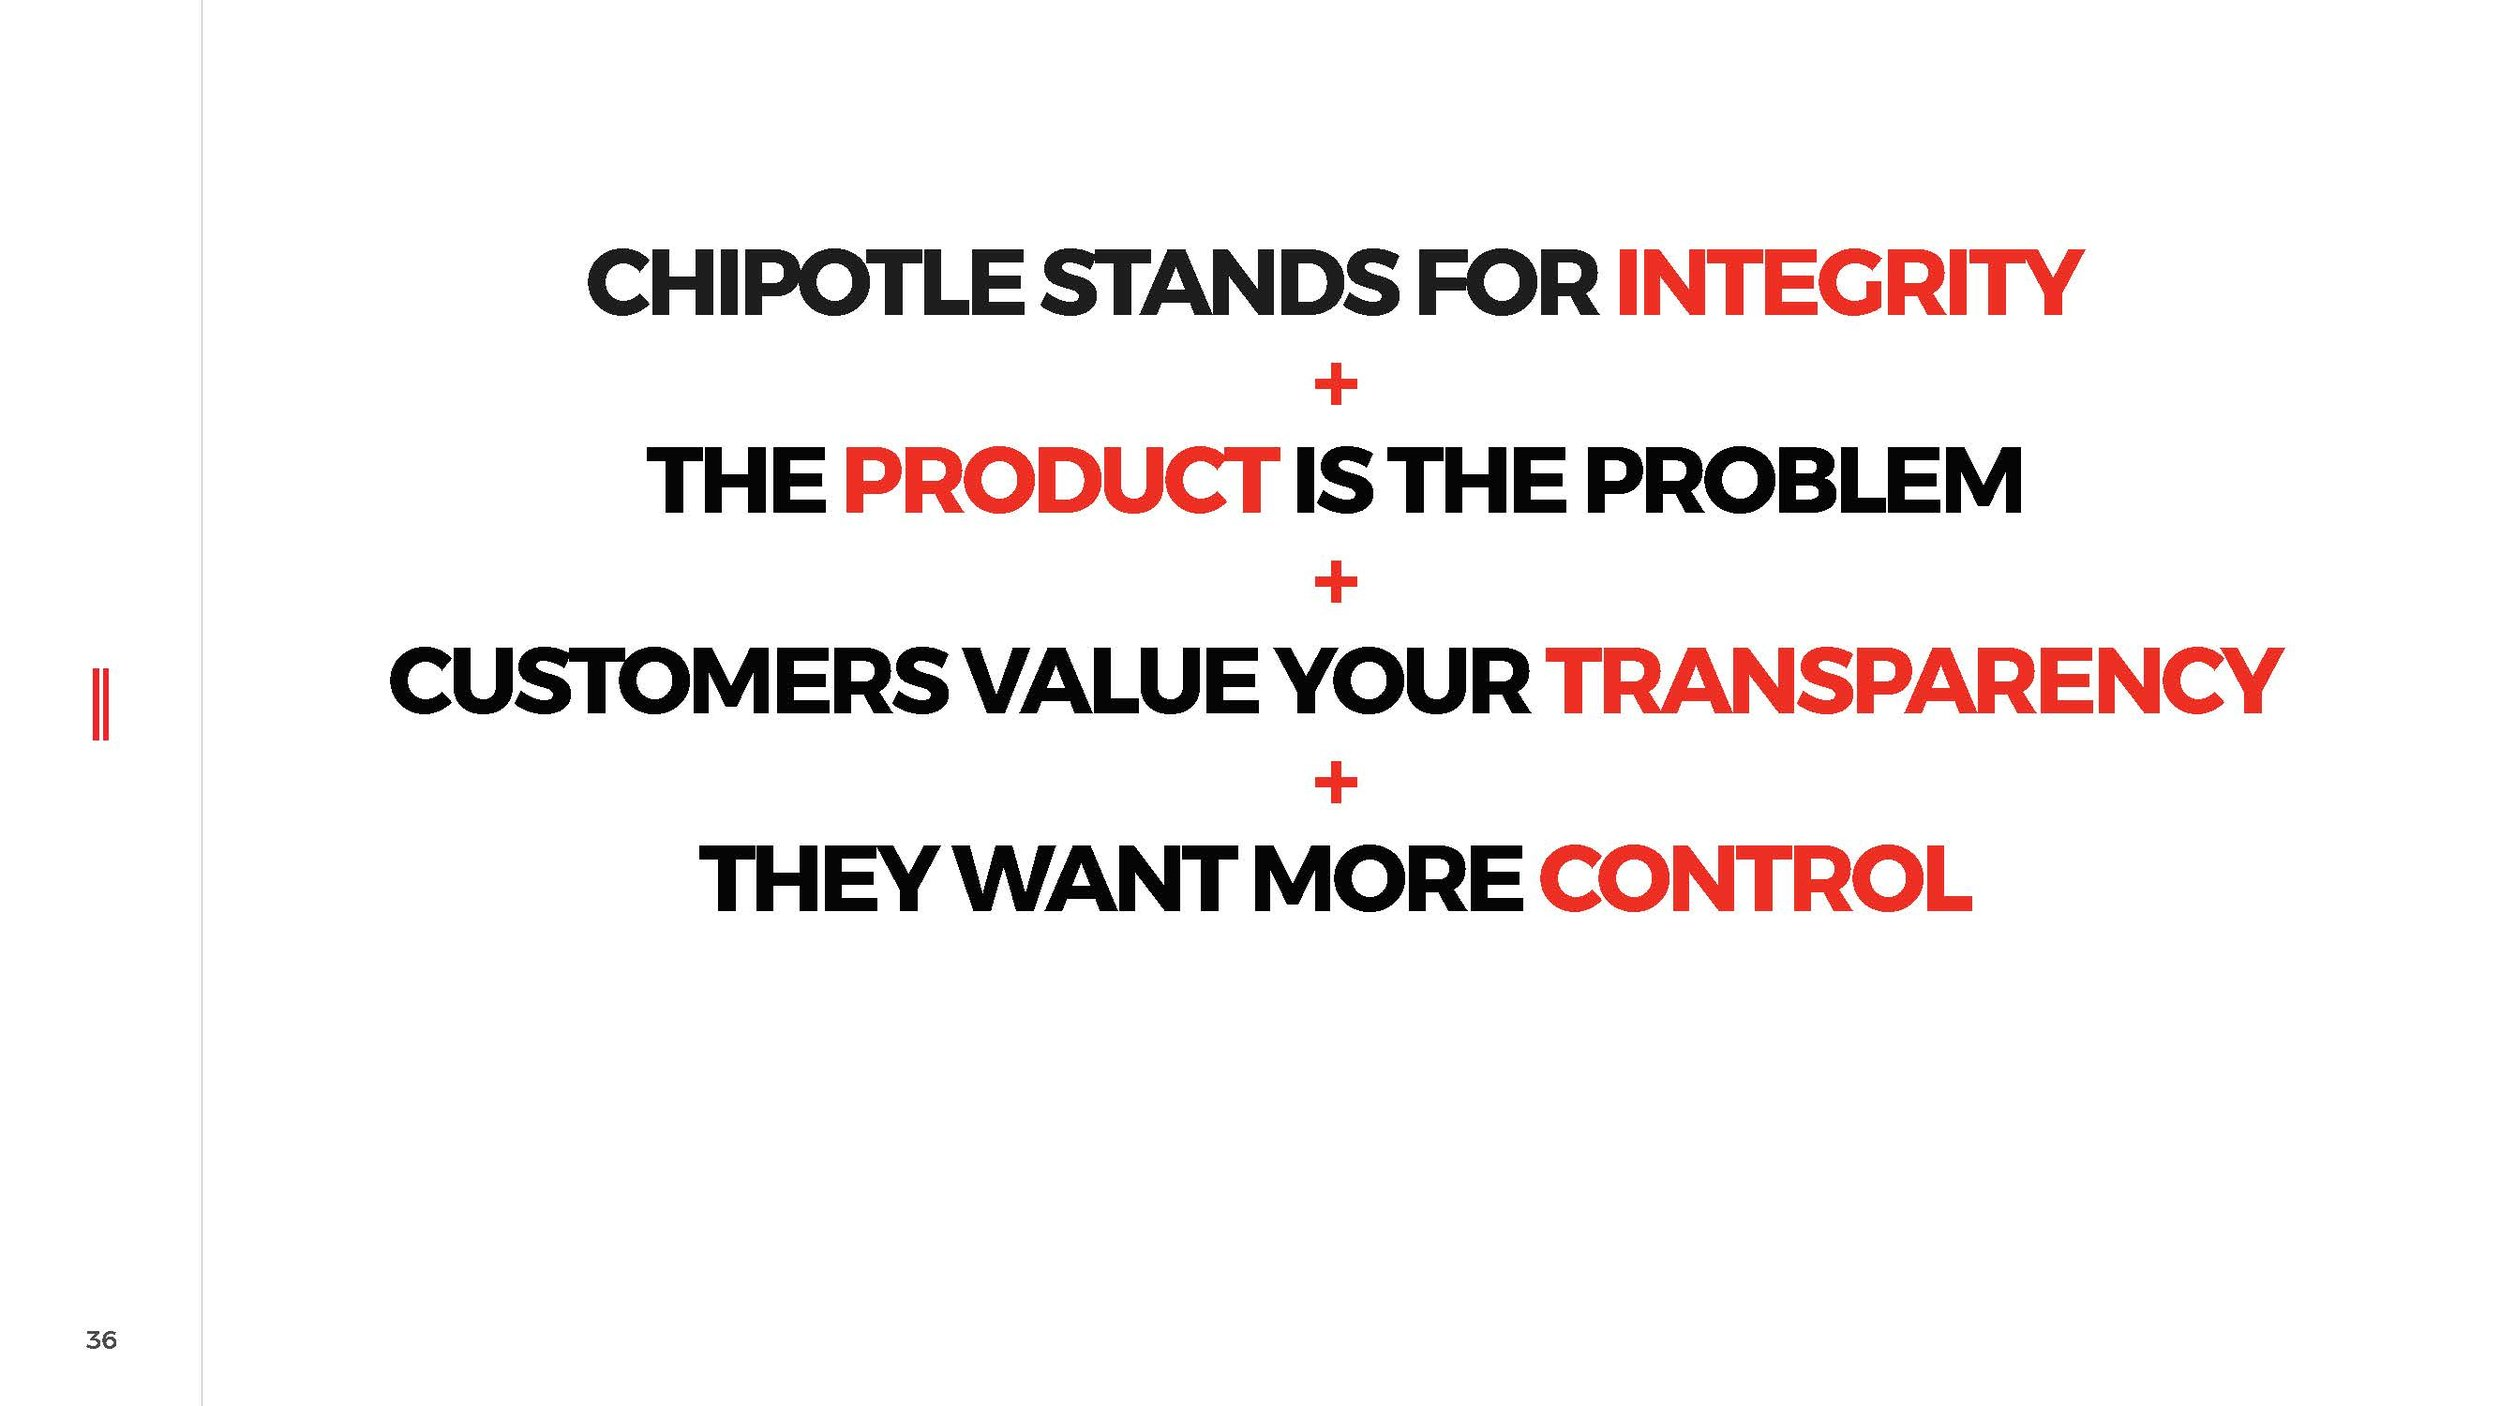 Chipotle Deck 1 Images_Page_36.jpg